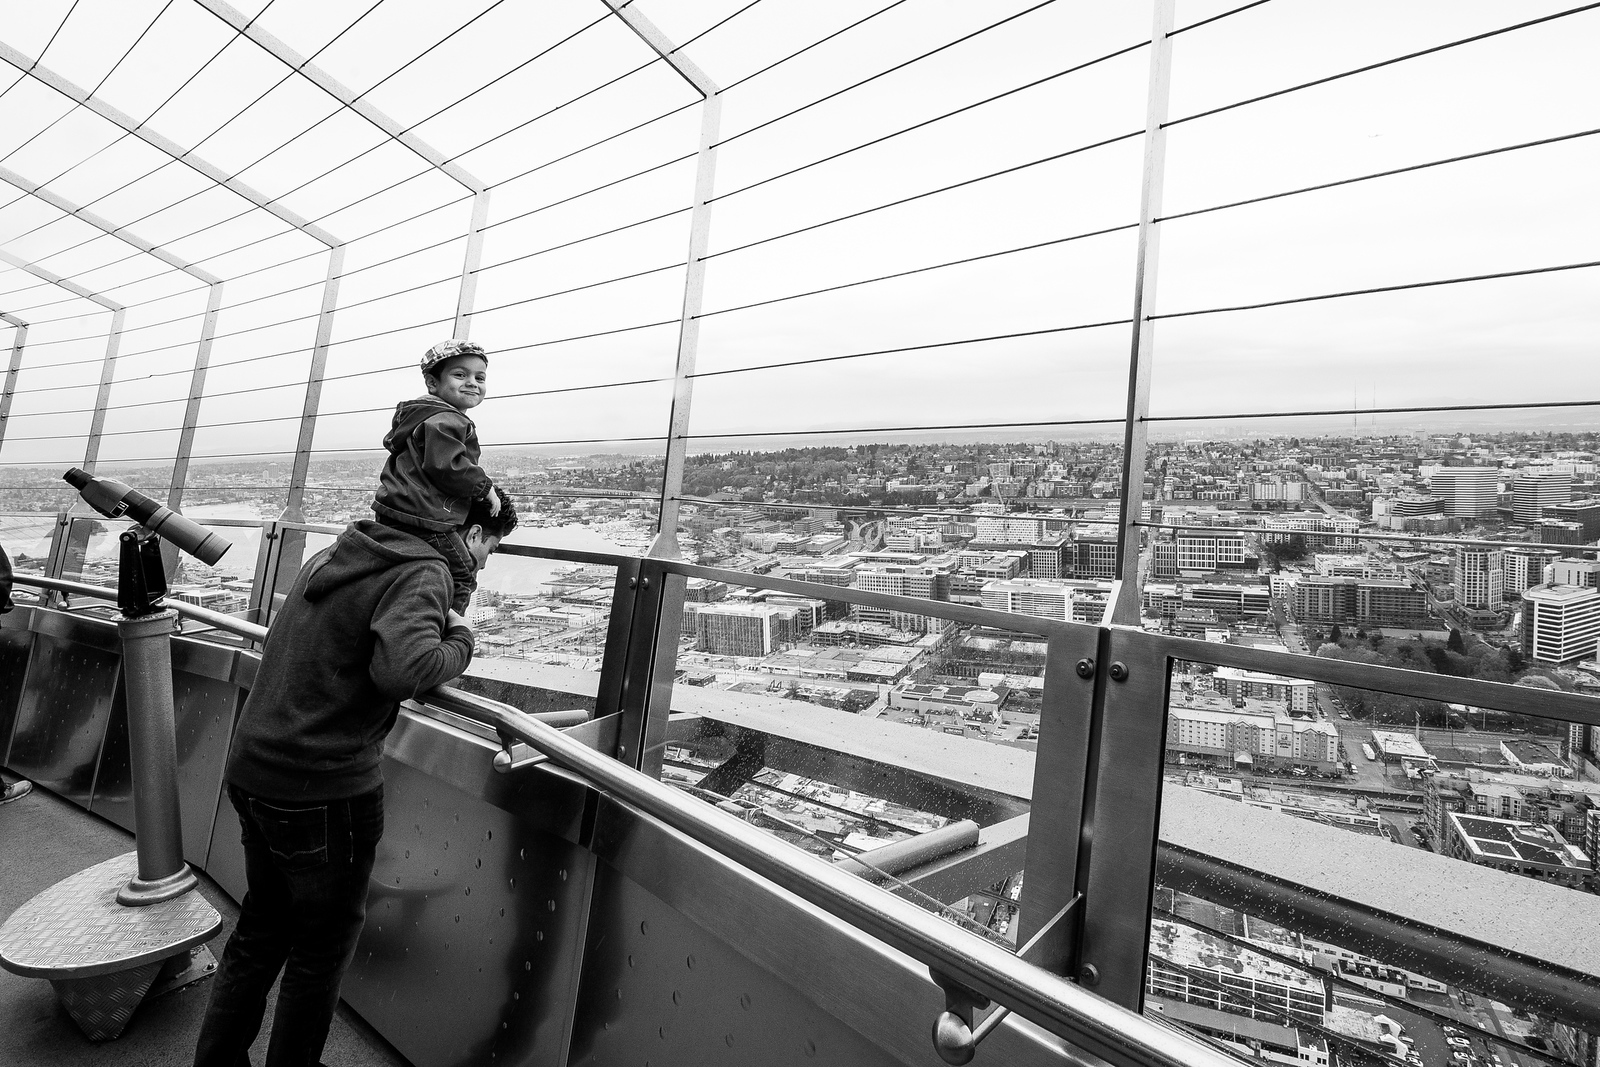 Perched higher than most, even atop the Space Needle in Seattle, WA, a young man smirks for the camera on a rainy day in March.